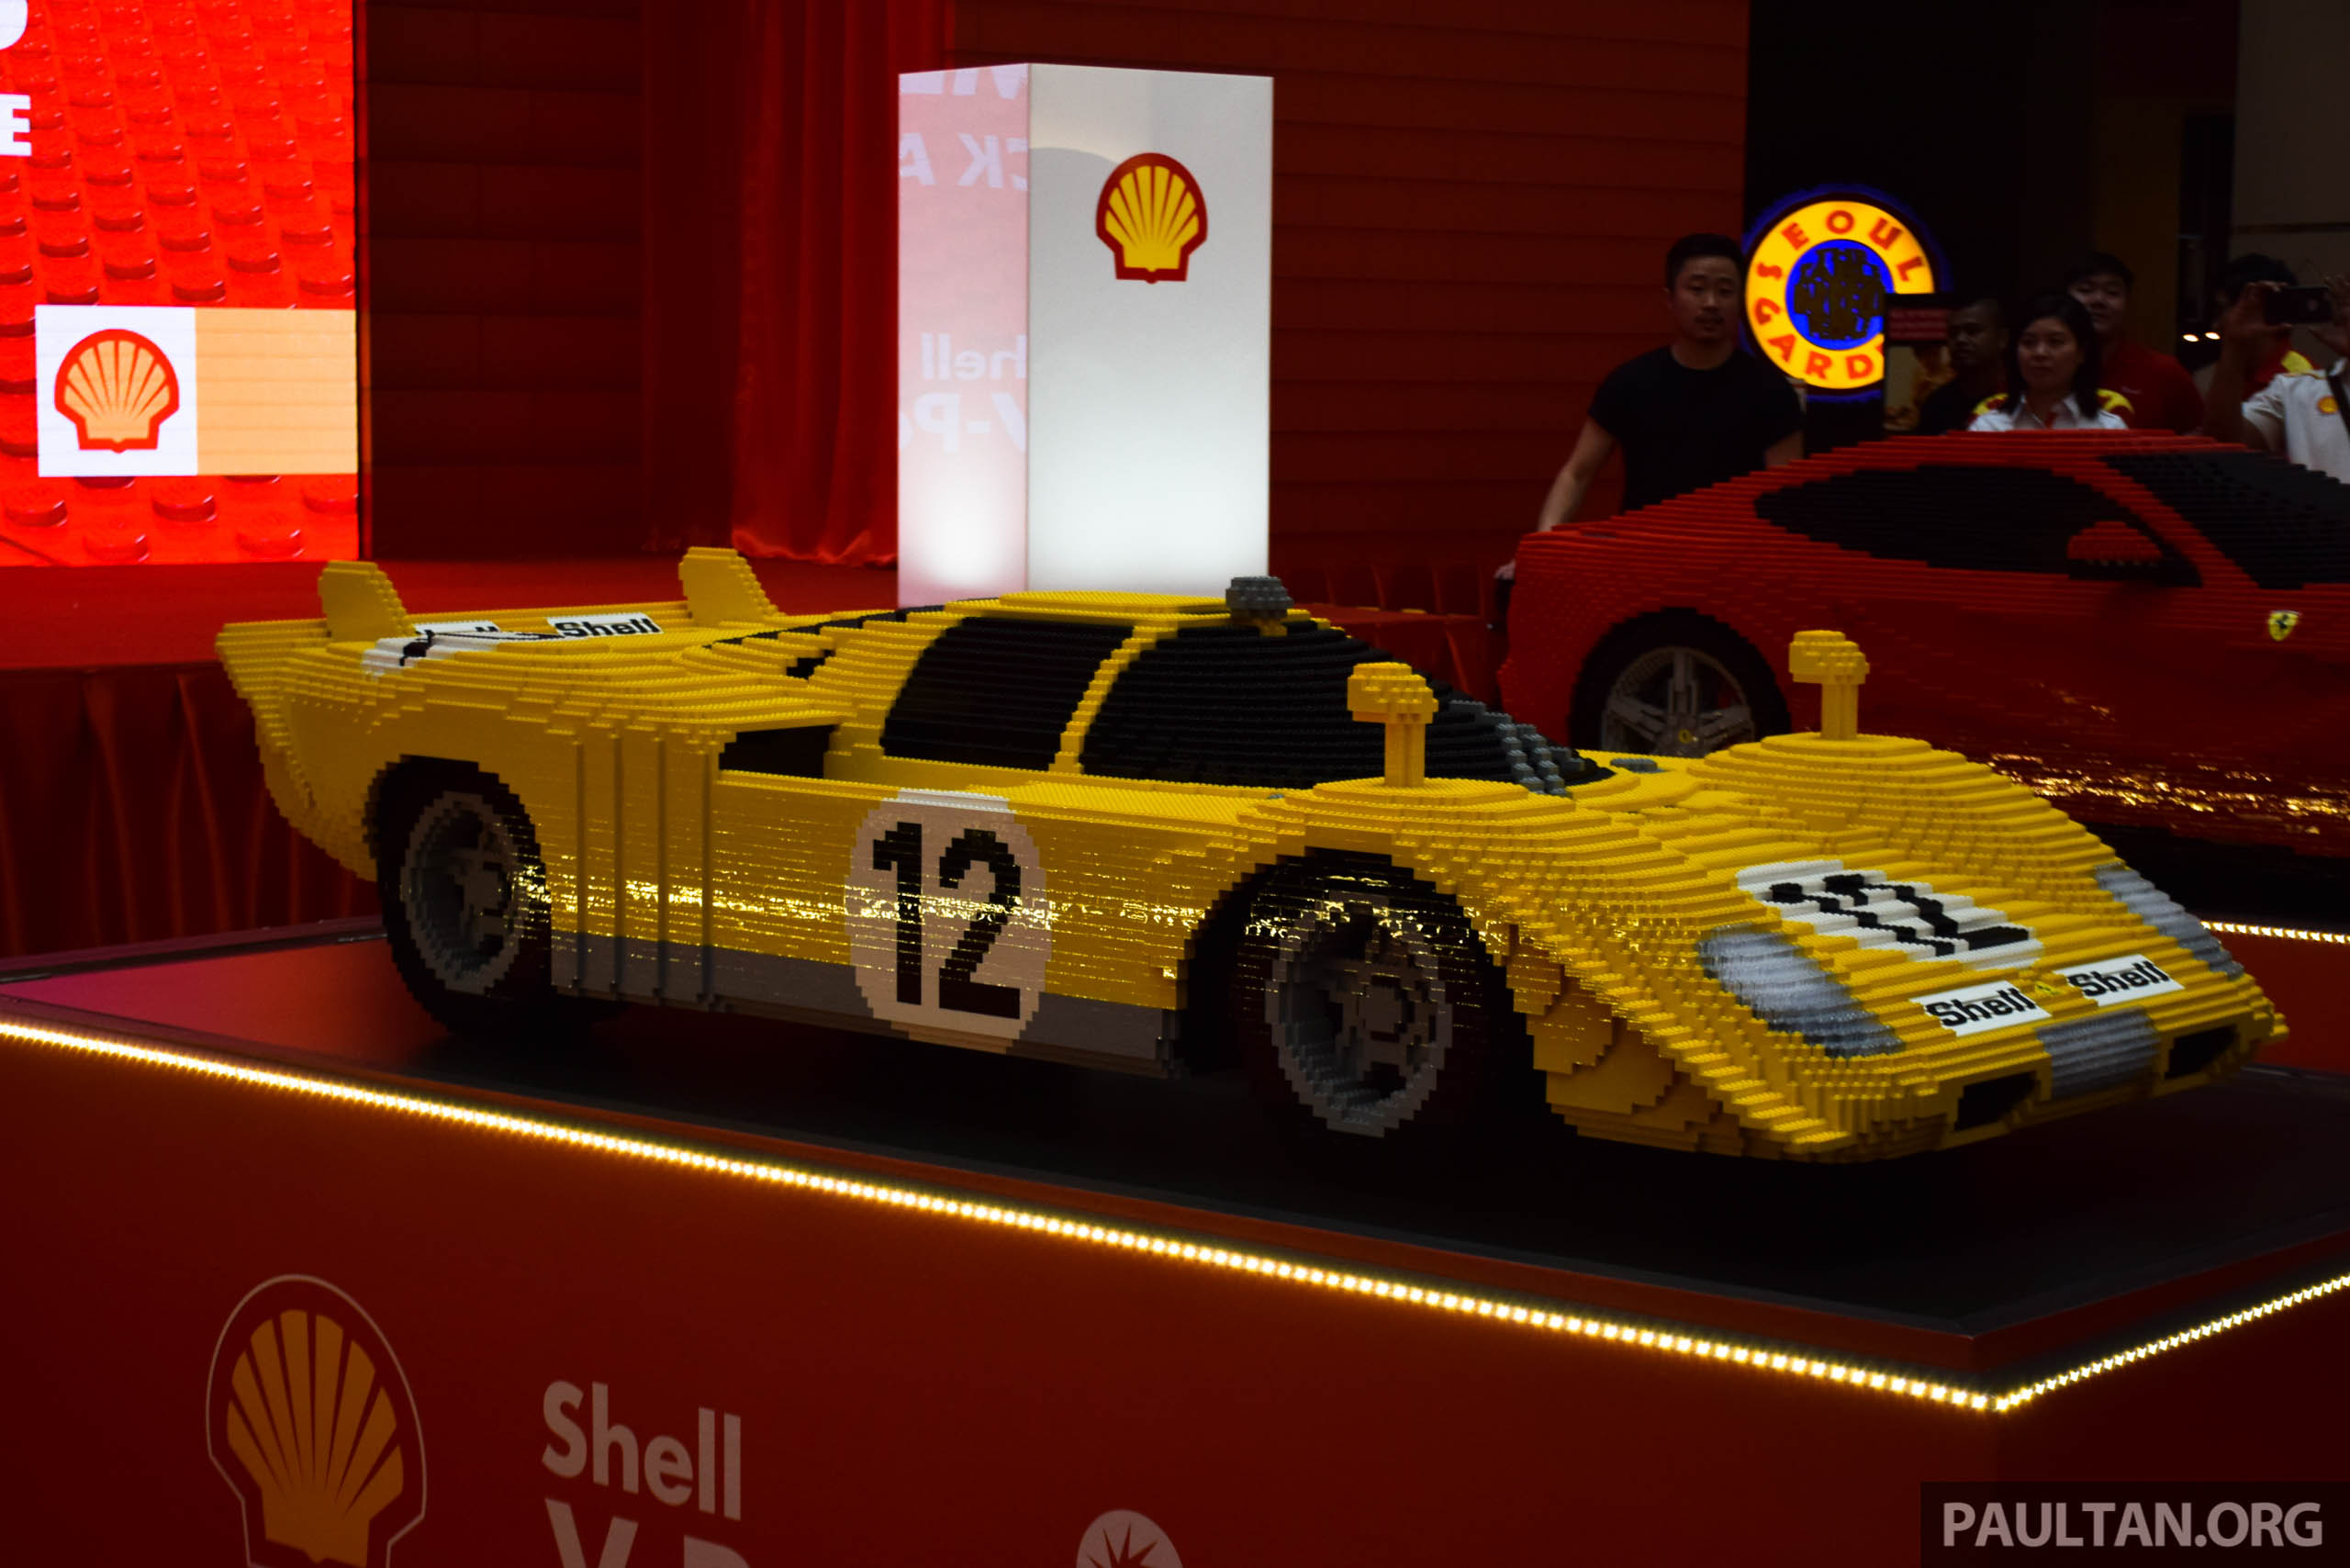 Shell V Power Lego Collection Launched In Malaysia Paul